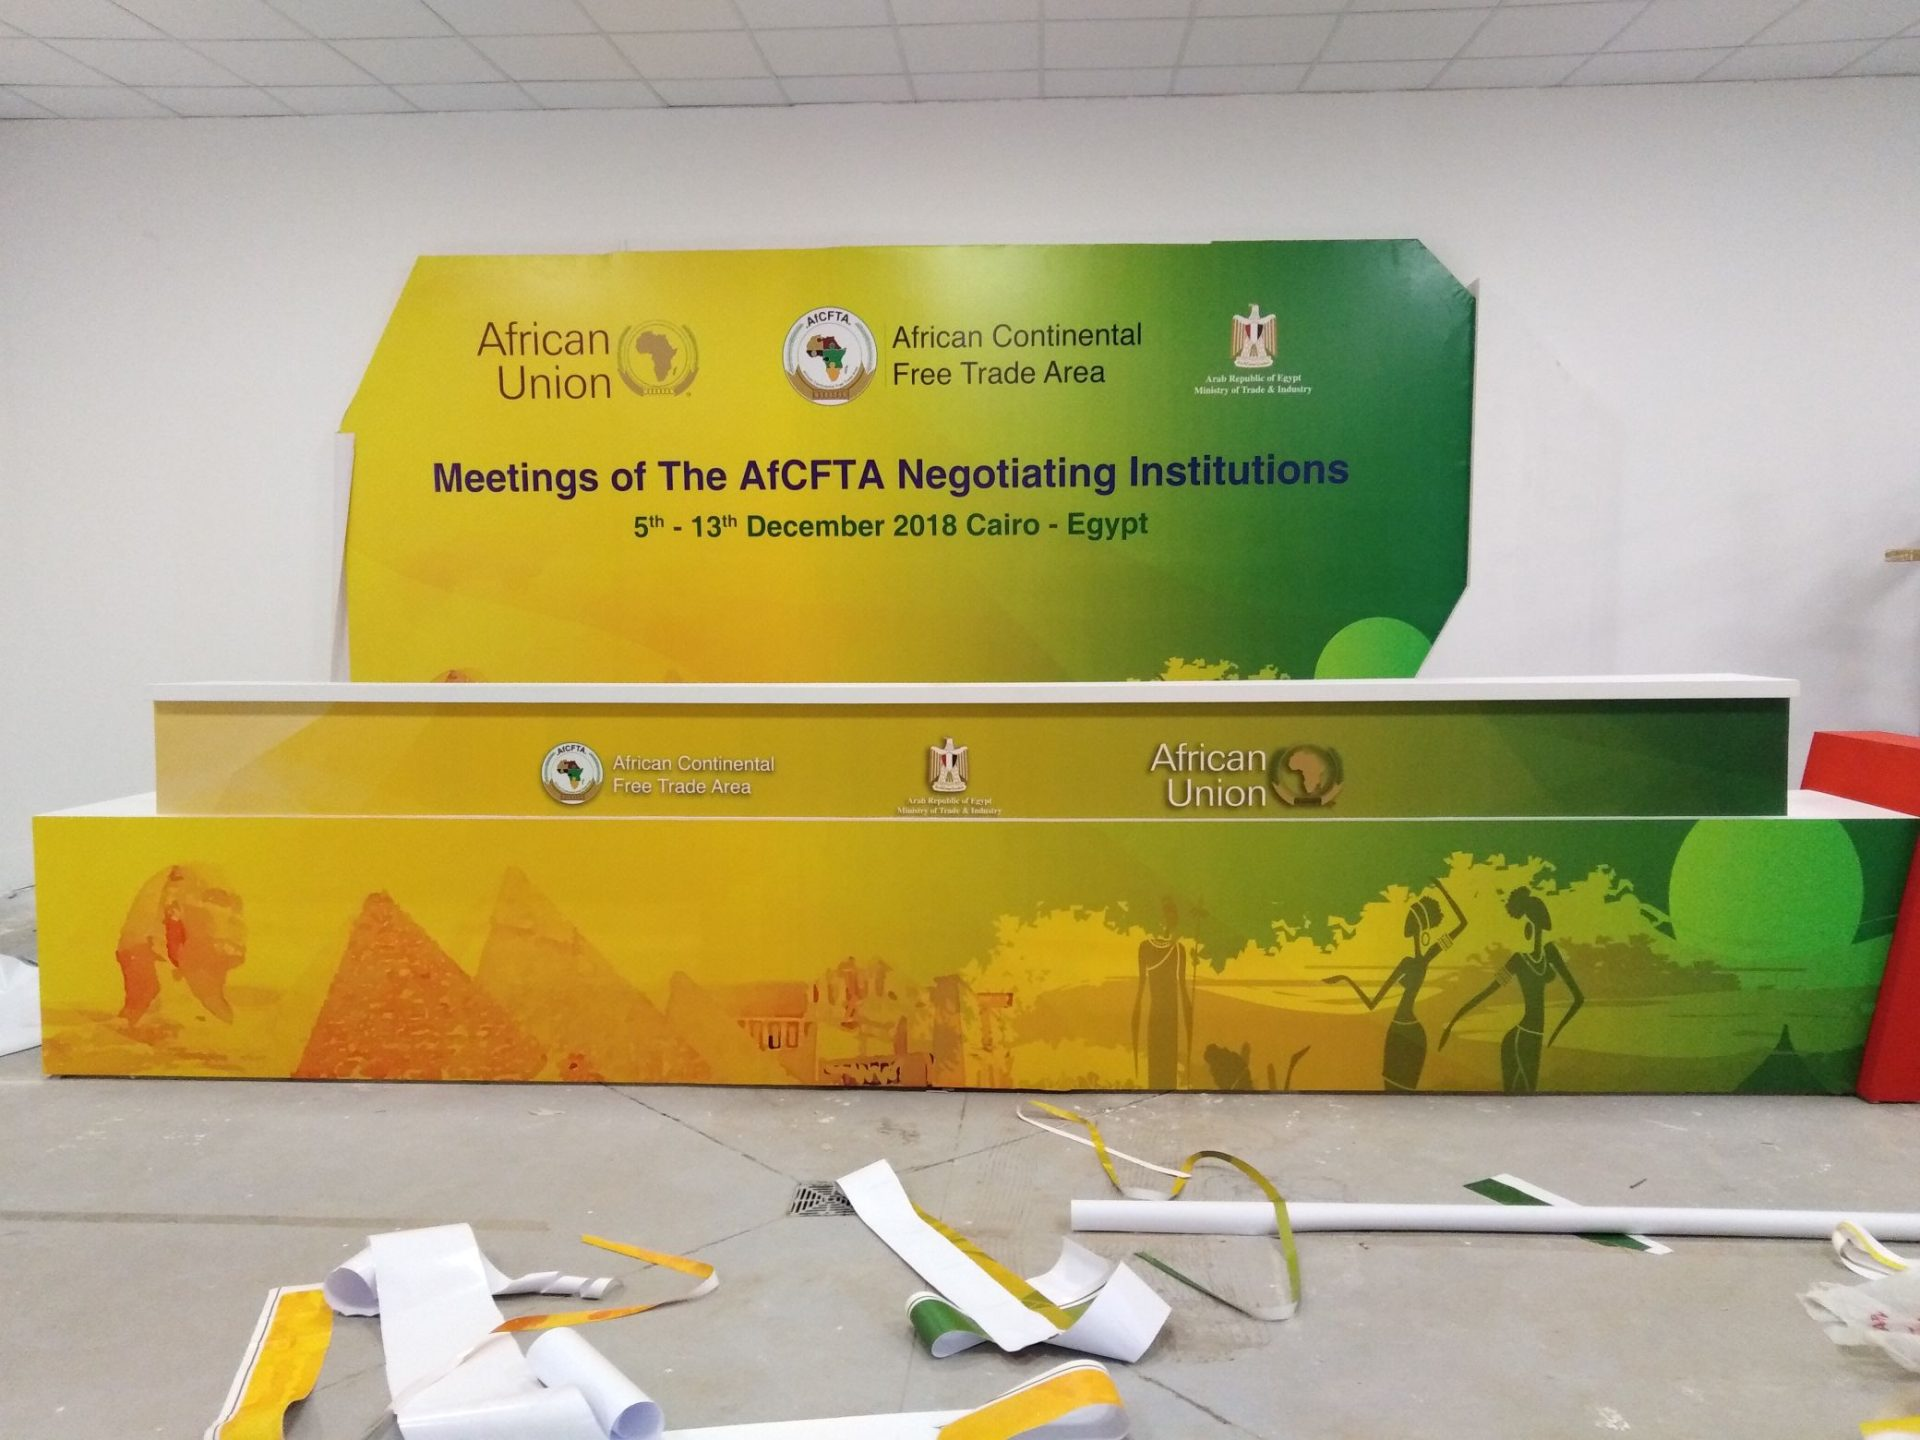 The Africa Forum 7